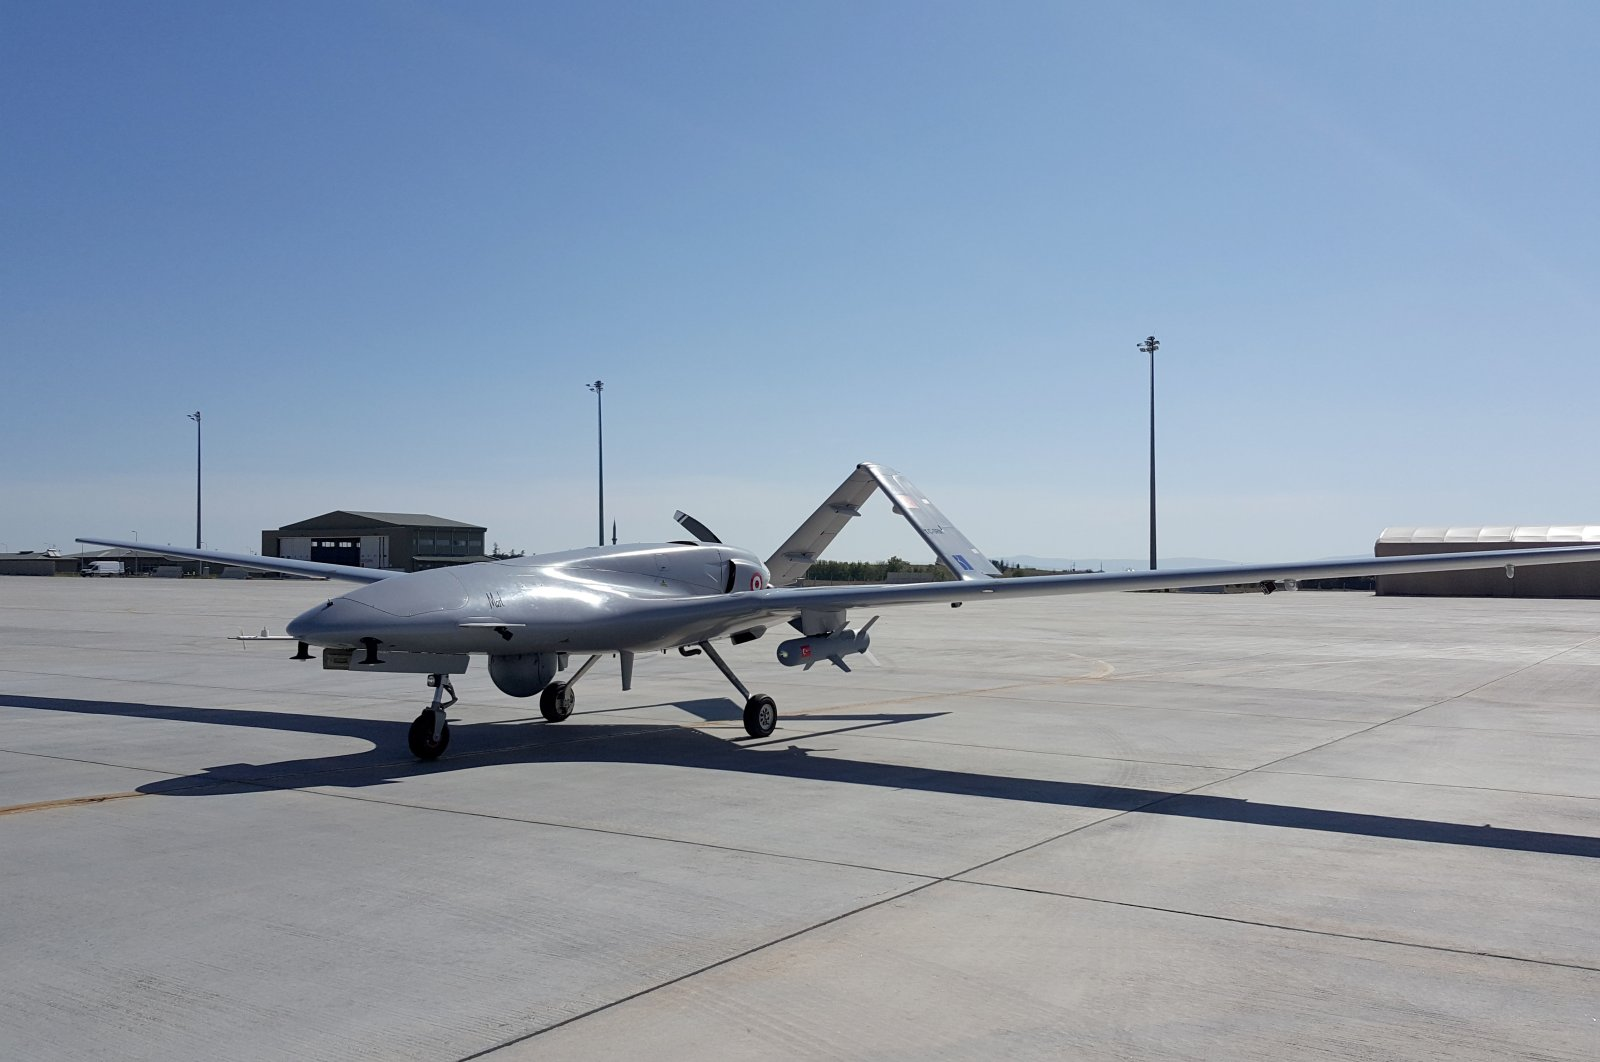 A Bayraktar TB2 armed drone, which was domestically produced by Turkey's leading unmanned aerial platform developer Baykar, is parked at an airfield in 2017. (AA Photo)